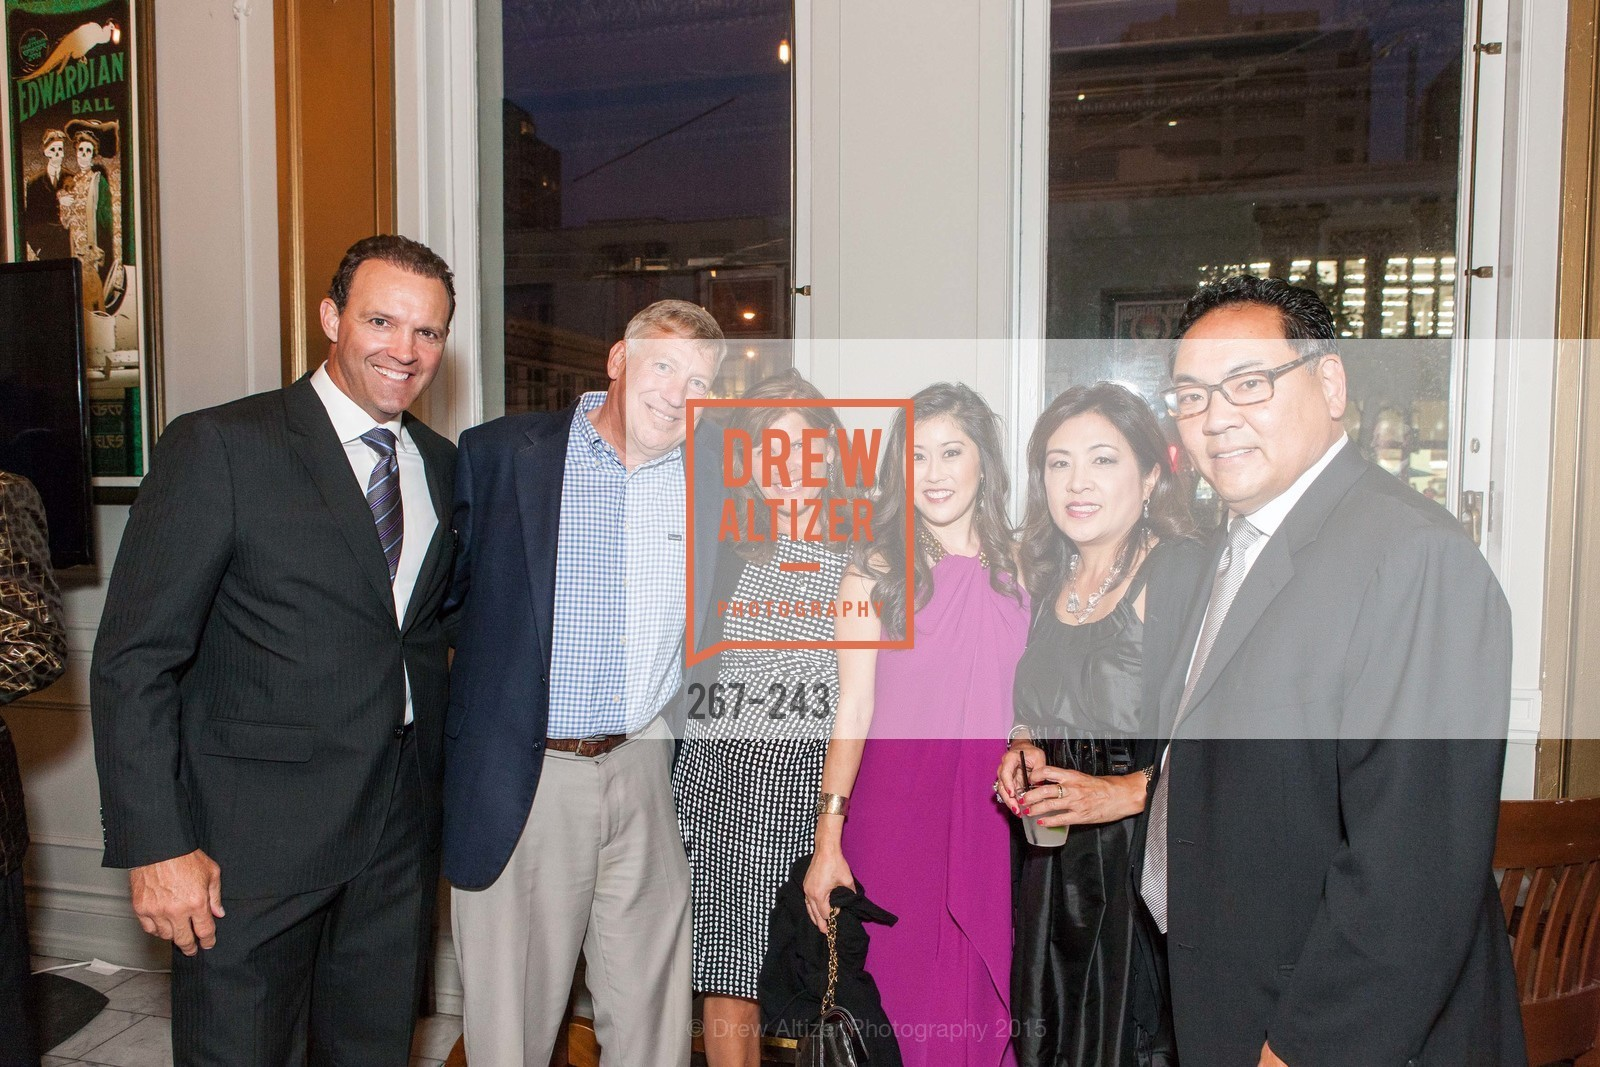 Bret Hedican, Pete Settnick, Cathy Crawford, Kristi Yamaguchi, 6TH ANNUAL GLIDE LEGACY GALA, The Regency Ballroom. 1300 Van Ness Ave, August 22nd, 2015,Drew Altizer, Drew Altizer Photography, full-service agency, private events, San Francisco photographer, photographer california